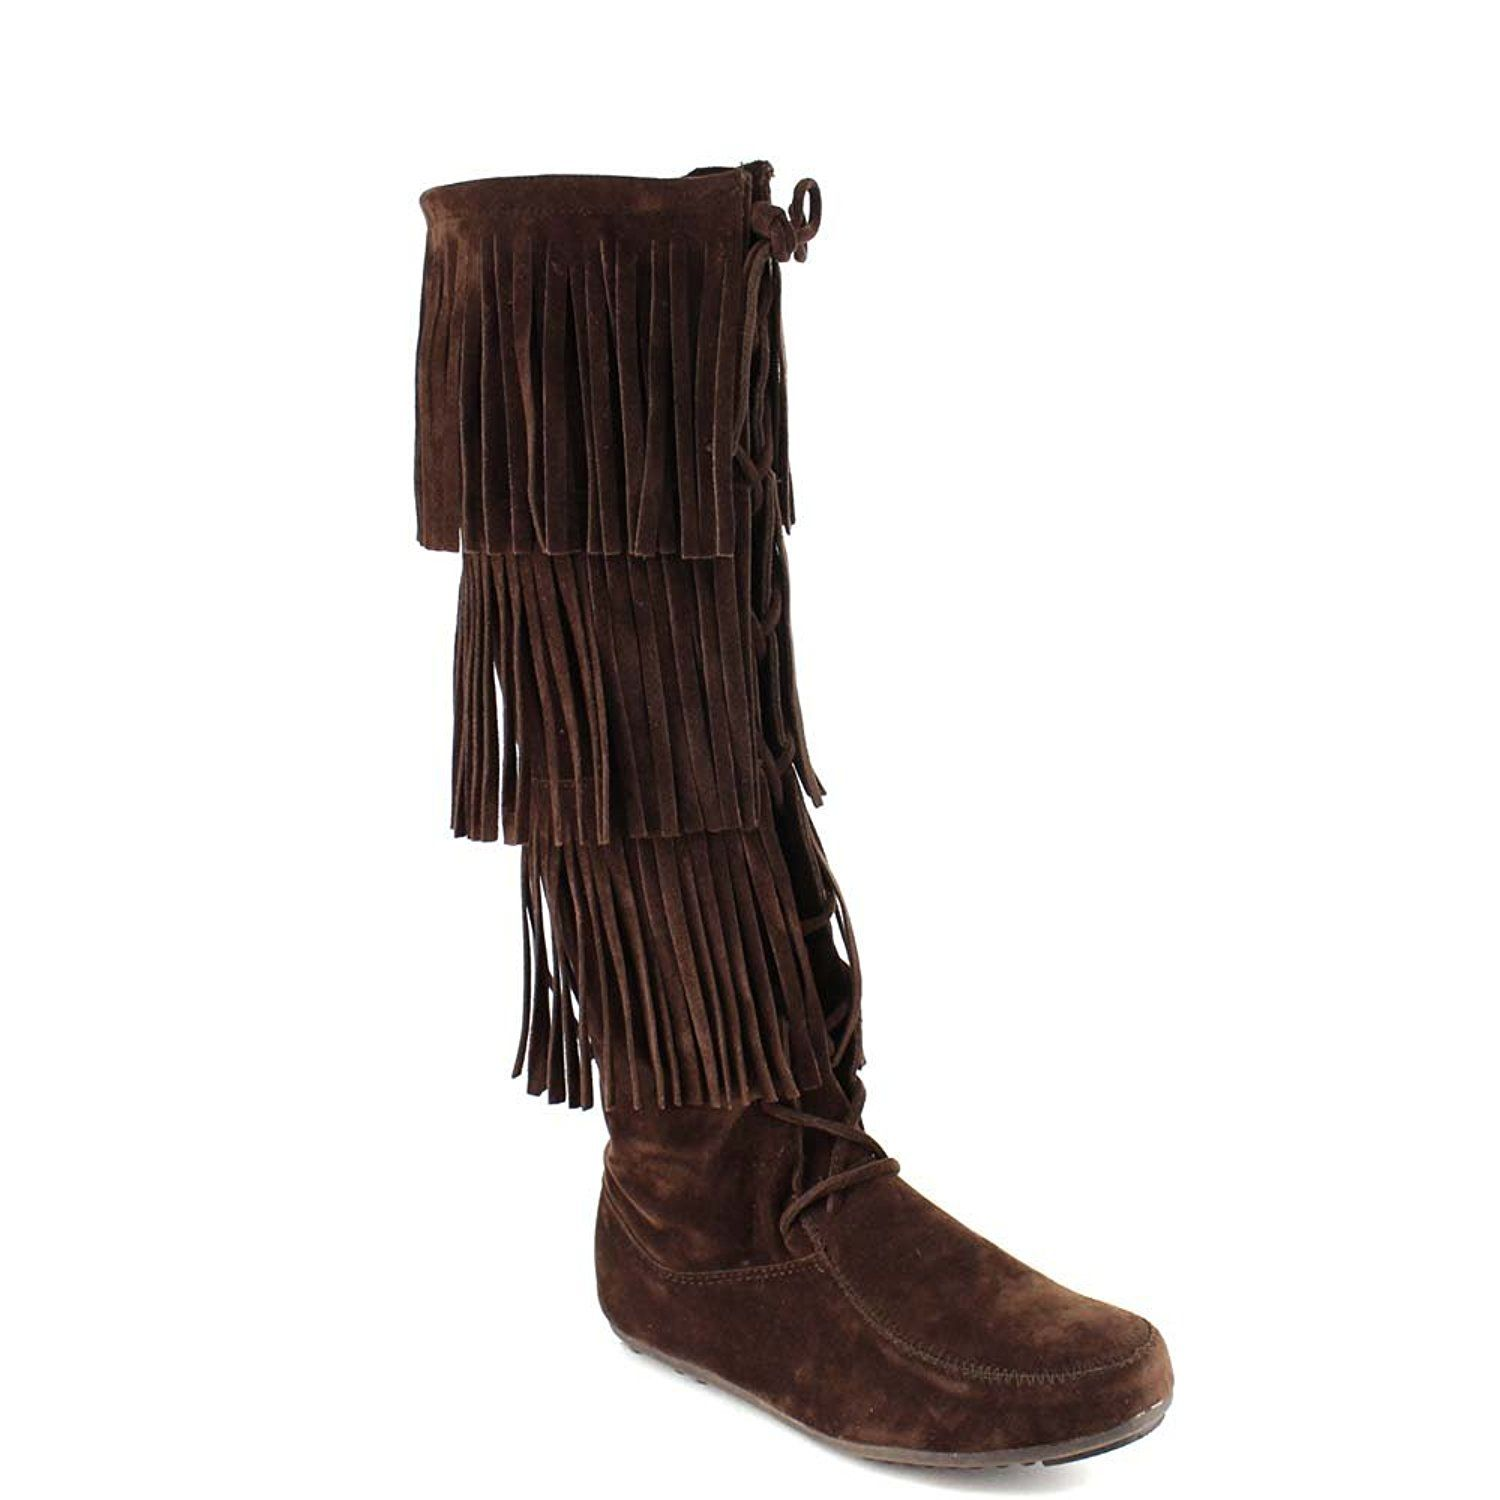 Minnetonka suede leather knee high tall lace up moccasin fringe boots - Forever Few2 Women S Stylish Three Layers Fringe Knee High Moccasin Boots Click Image For